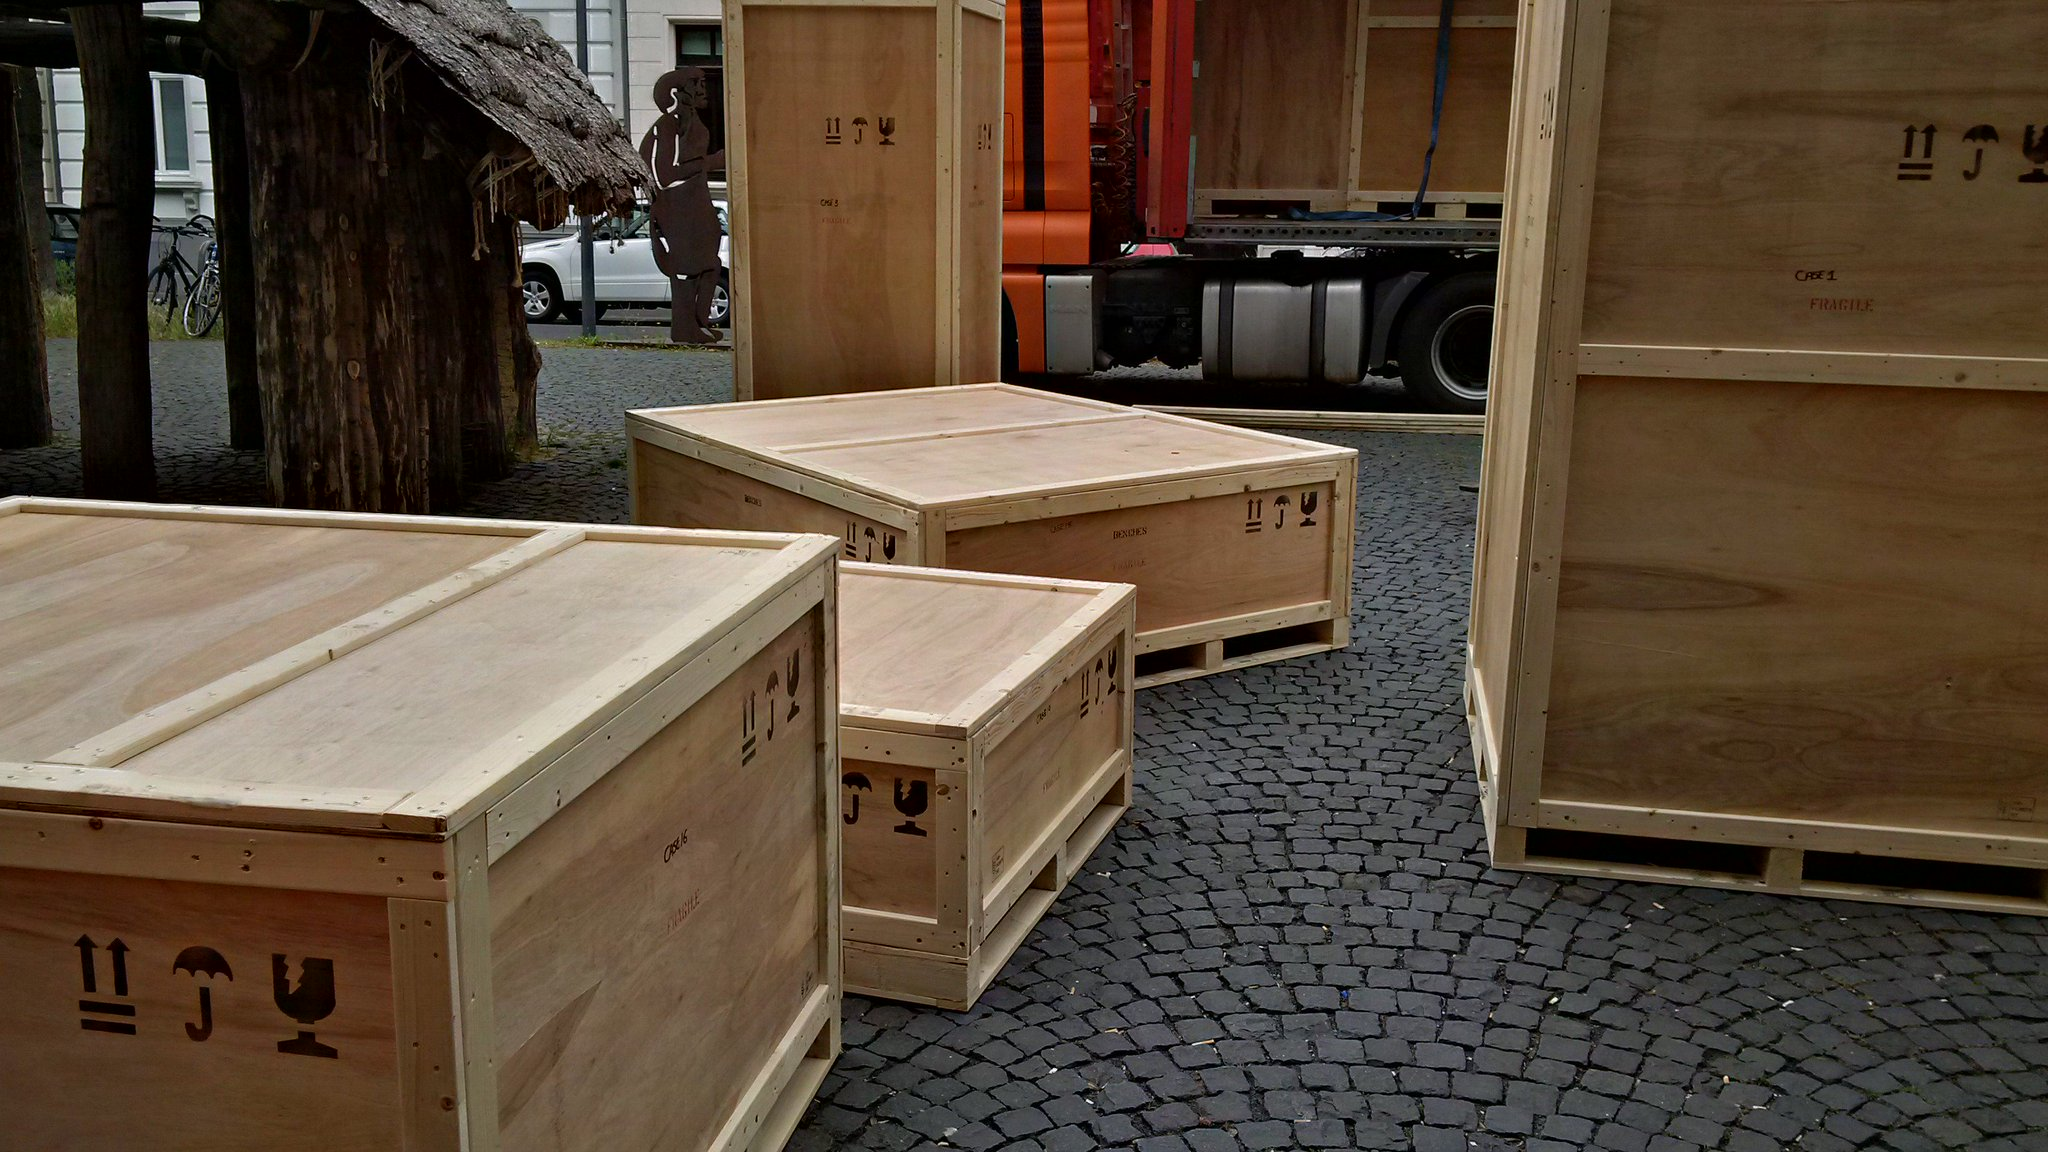 What's inside the boxes? Discover it as from tonight in #BeyondtheLab in @lvrlandesmuseum & tomorrow @sciencemuseum https://t.co/sol4gy5A8q